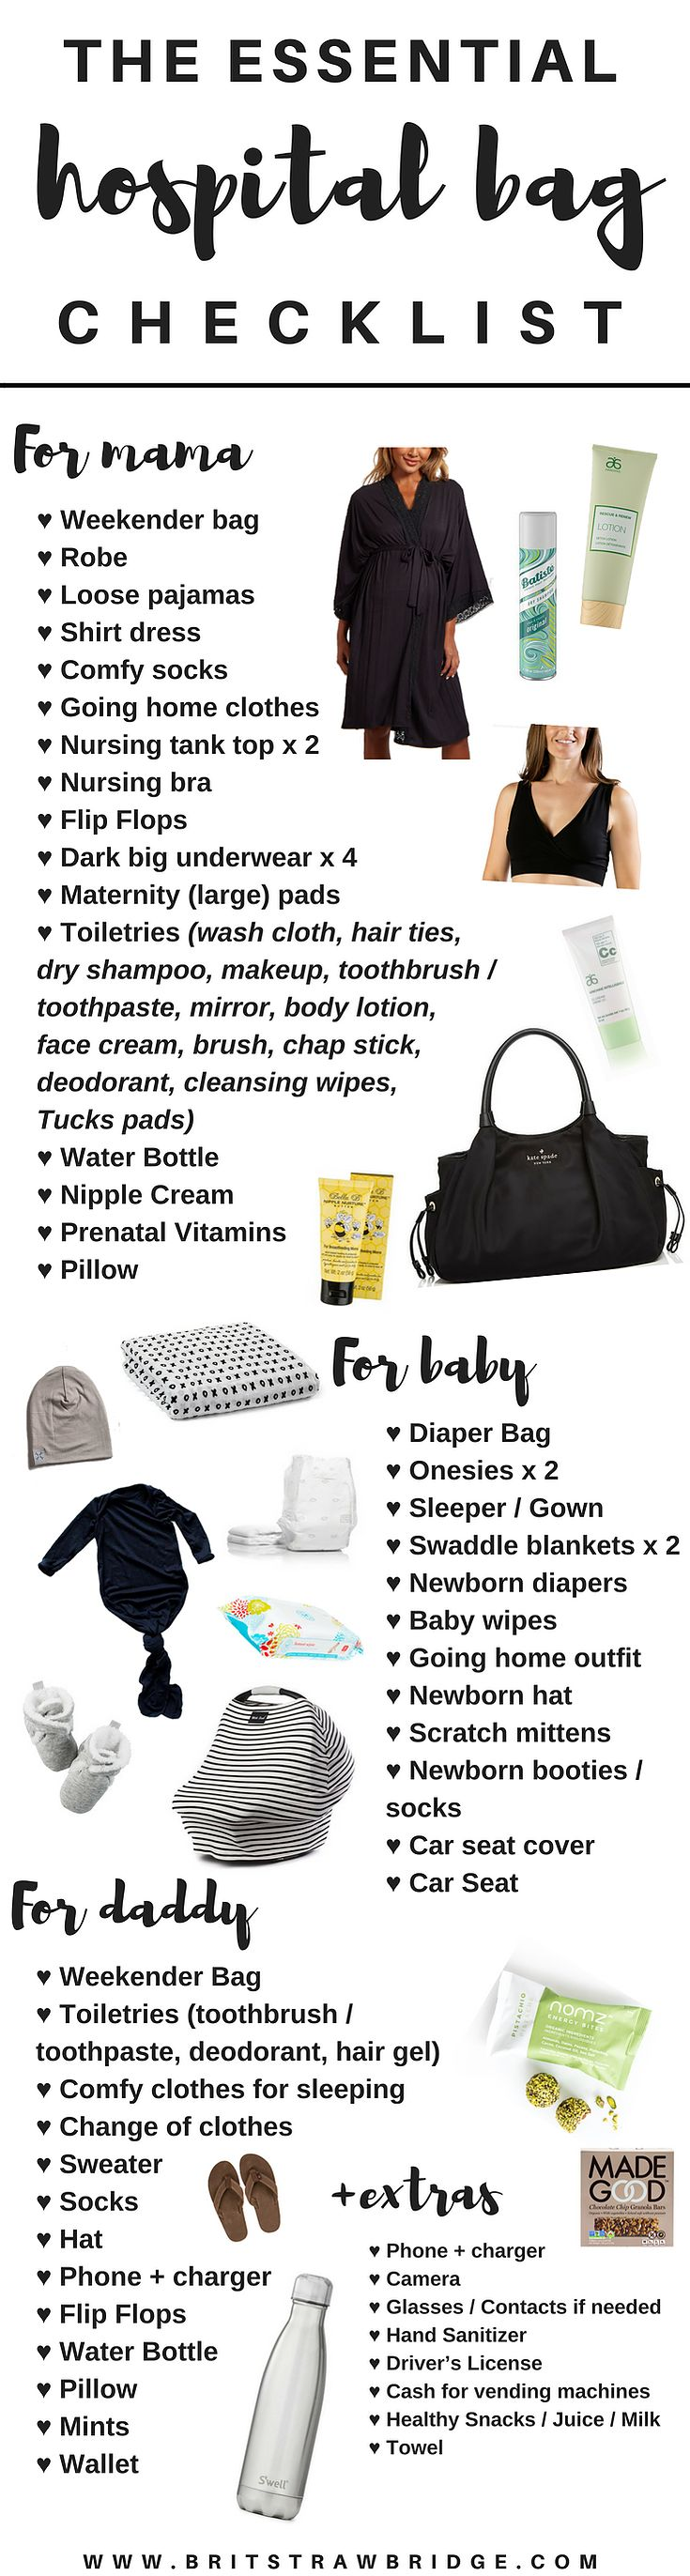 The Essentials Hospital Bag Checklist for mama, daddy & baby. + free checklist printable!